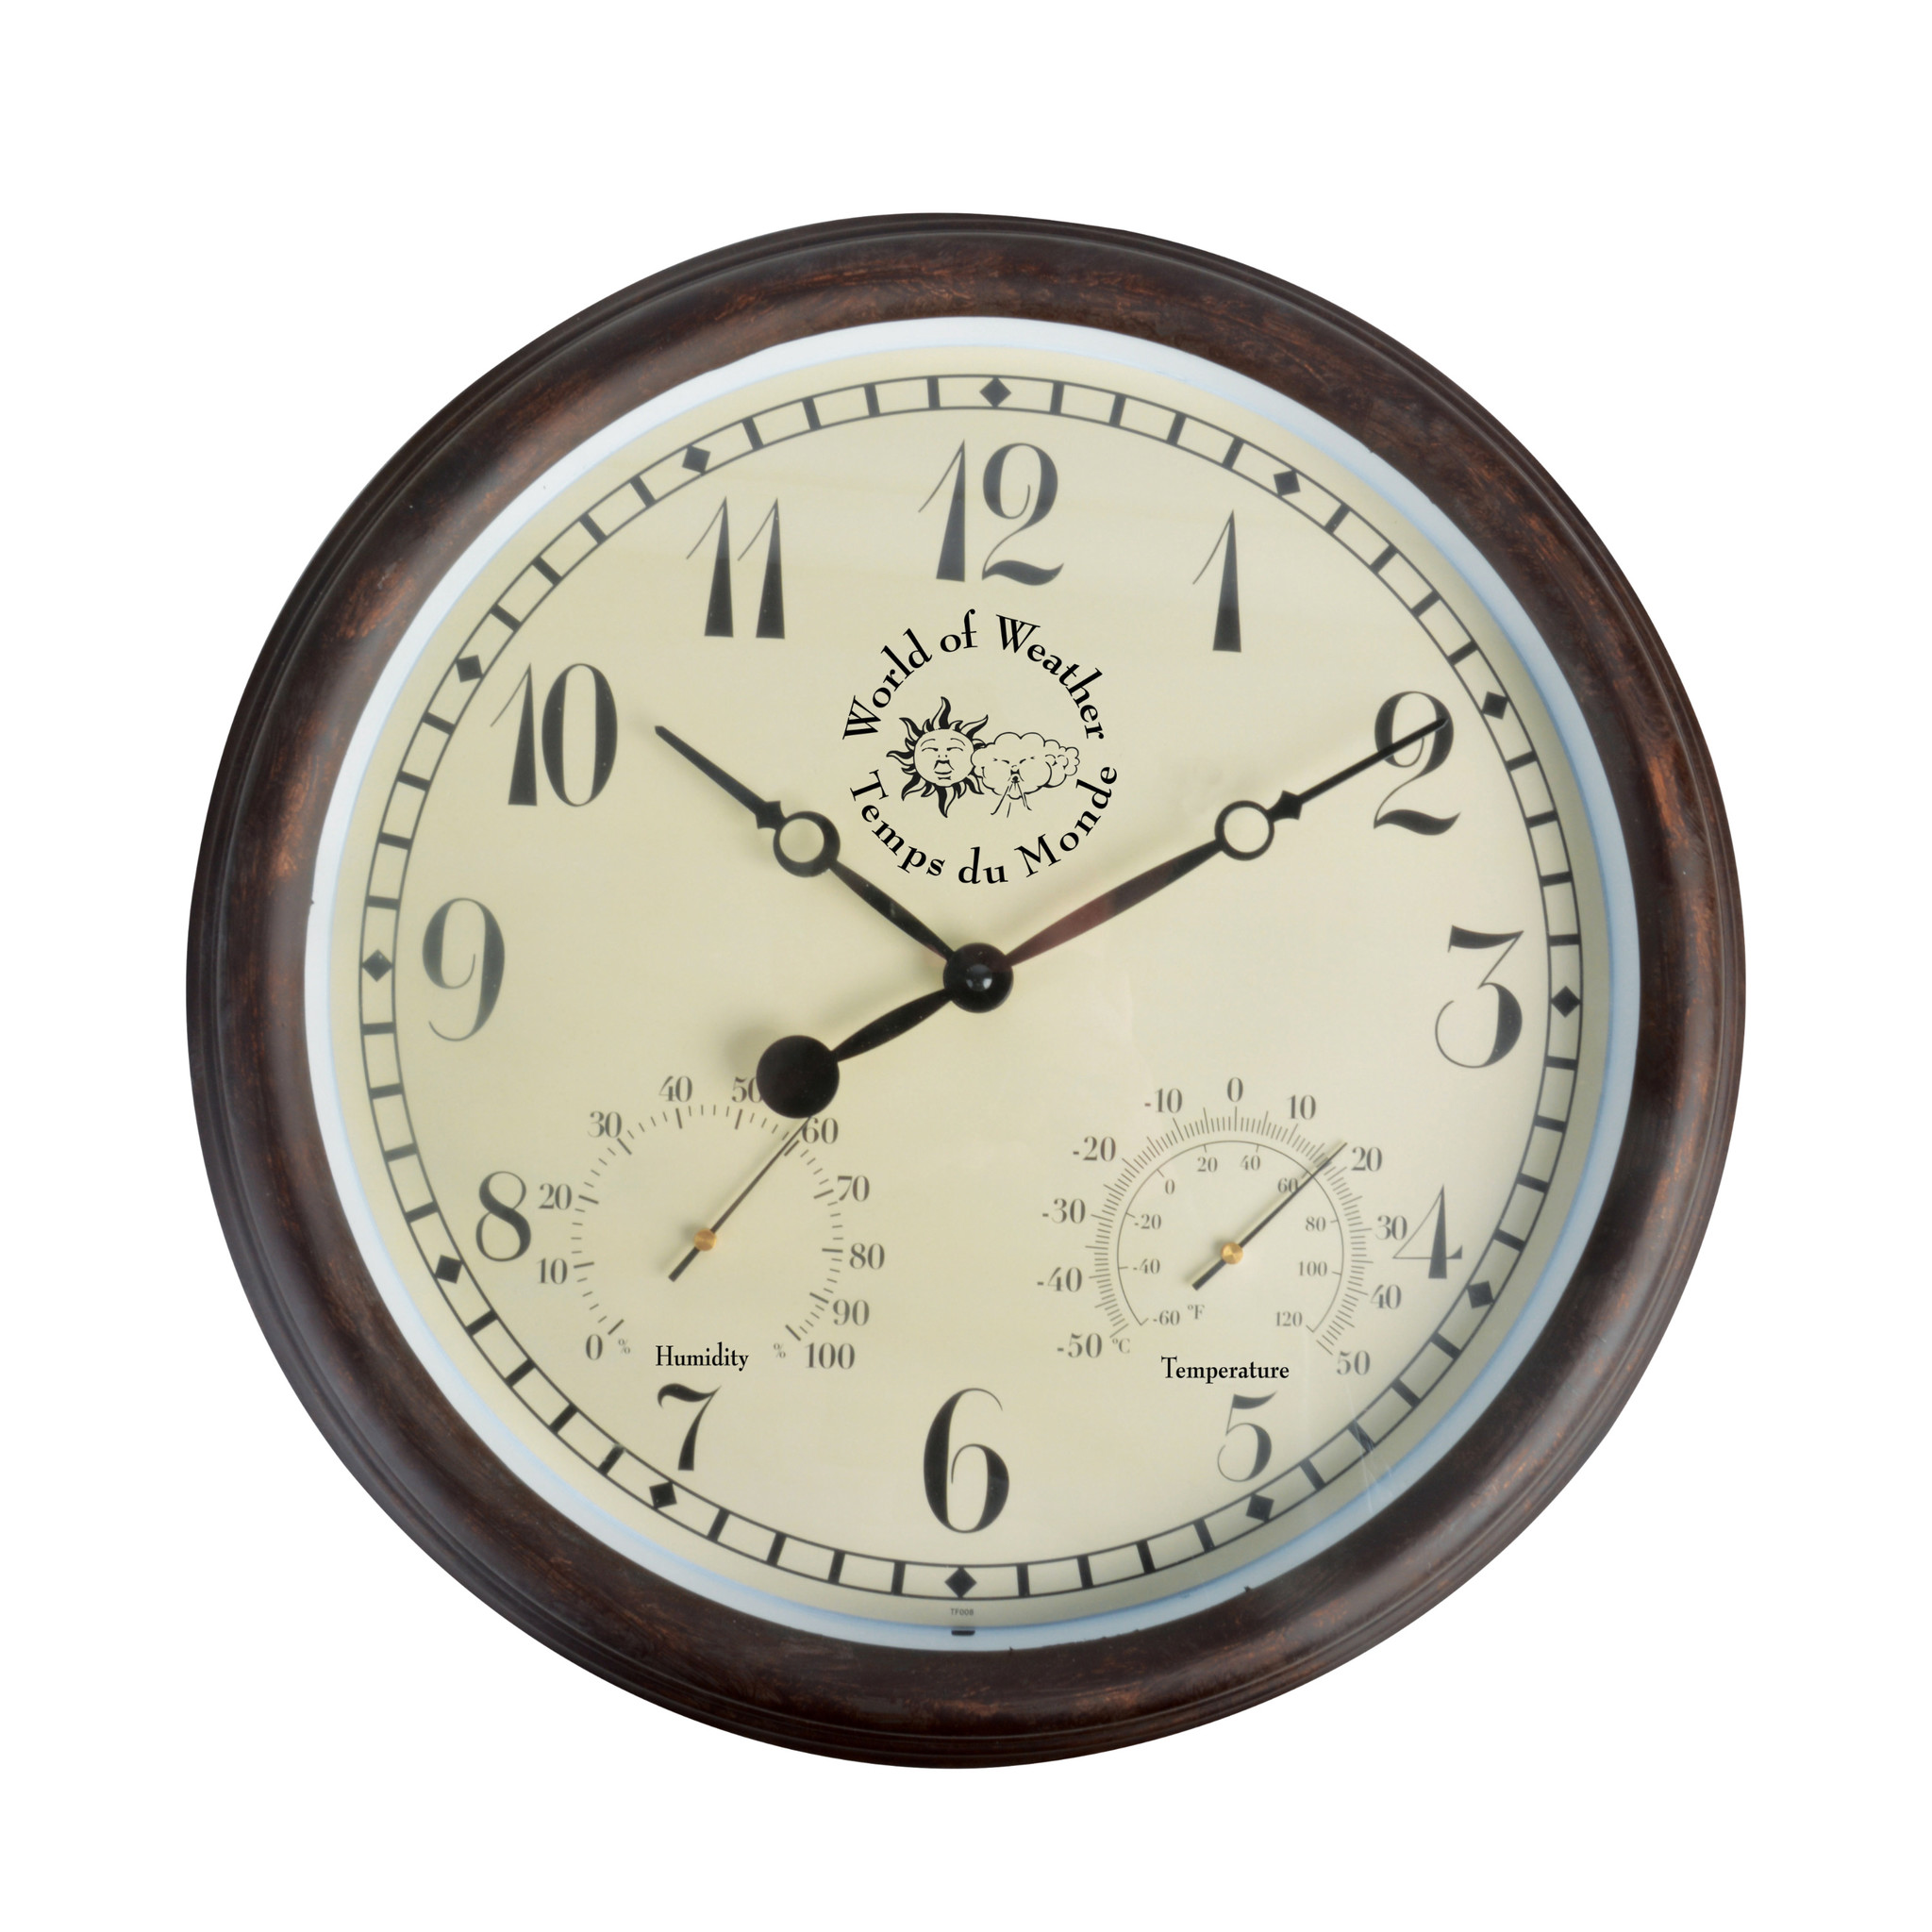 Outer clock with thermometer and hygrometer